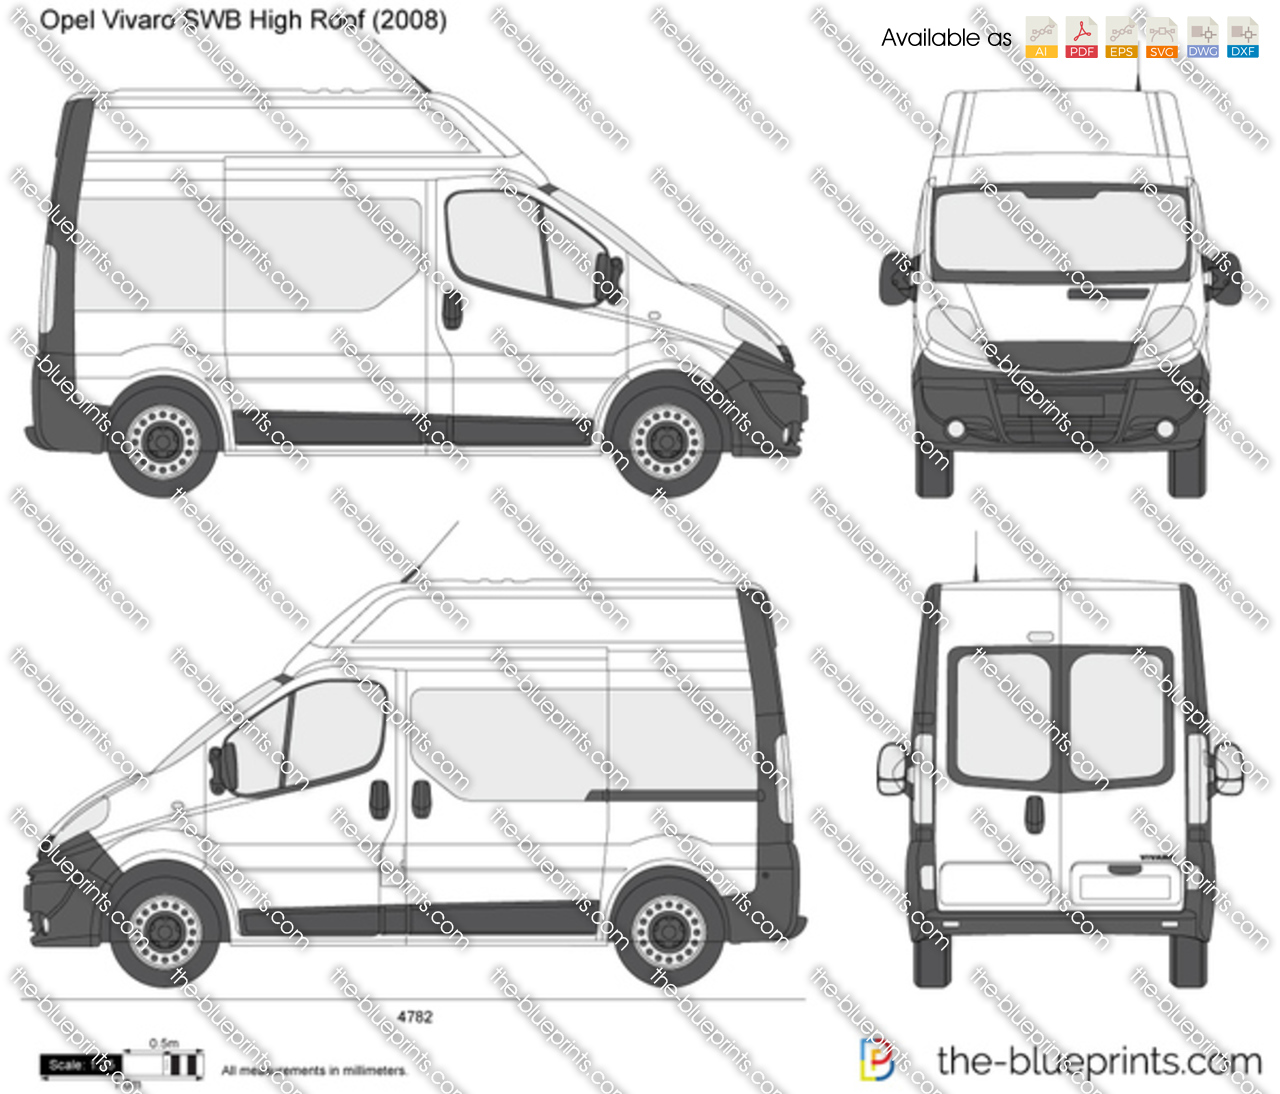 opel vivaro swb high roof vector drawing. Black Bedroom Furniture Sets. Home Design Ideas